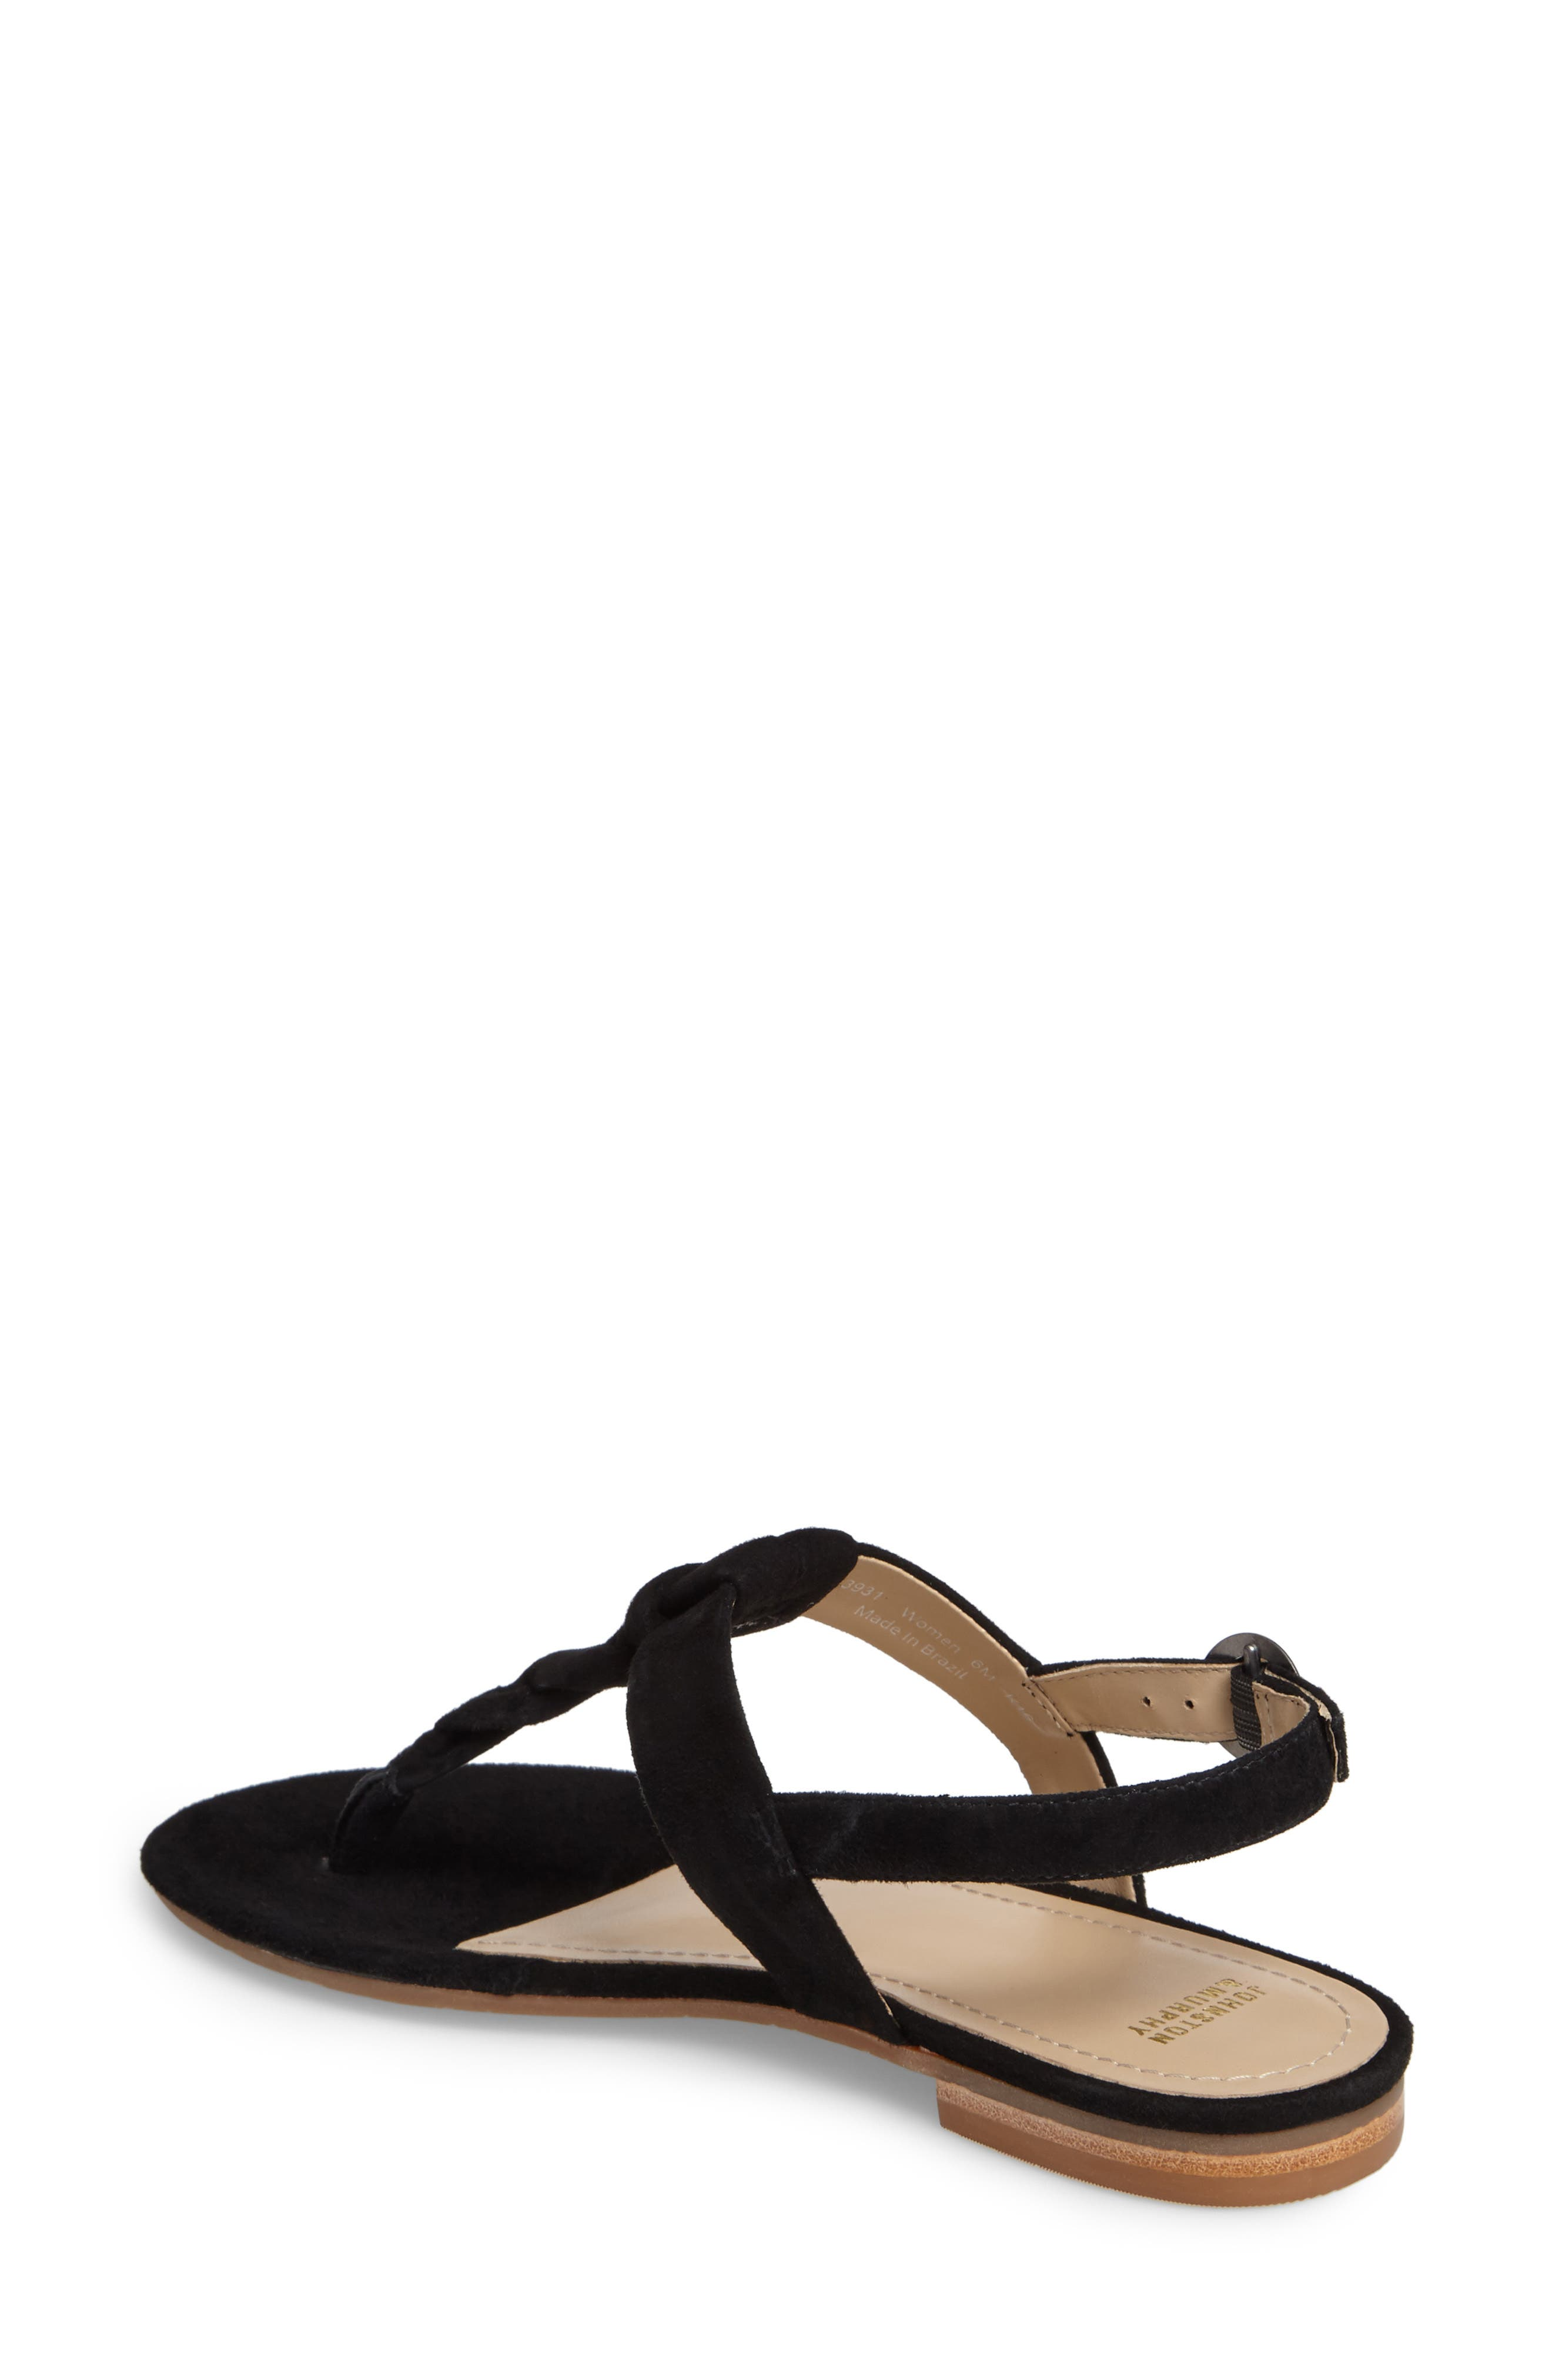 Holly Twisted T-Strap Sandal,                             Alternate thumbnail 2, color,                             001